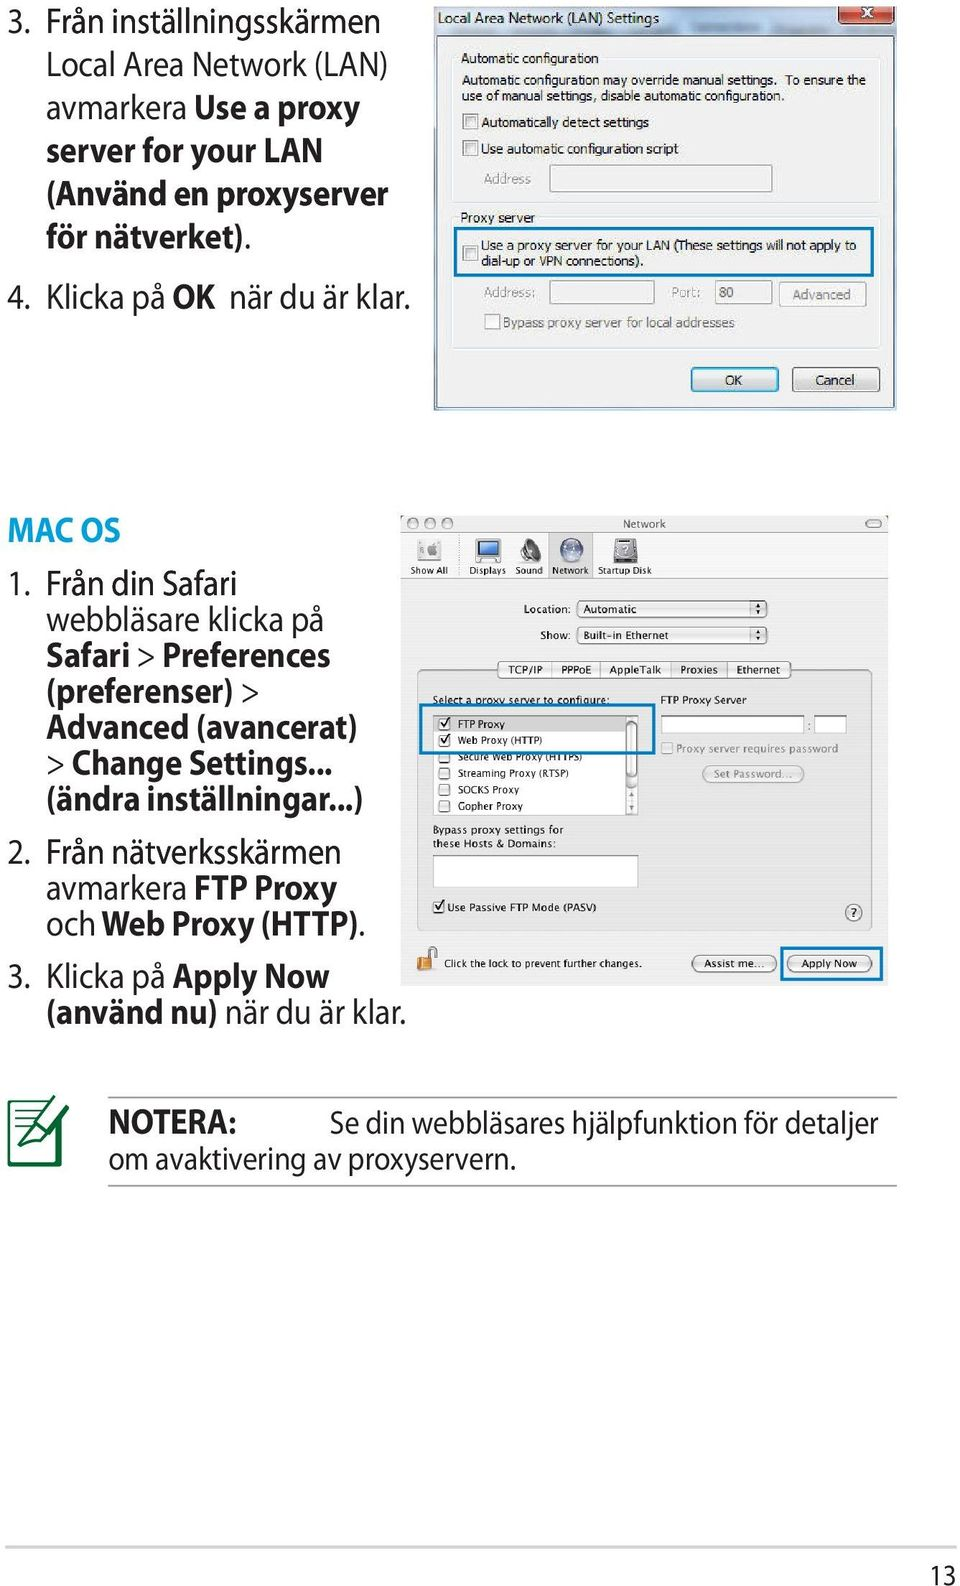 Från din Safari webbläsare klicka på Safari > Preferences (preferenser) > Advanced (avancerat) > Change Settings.